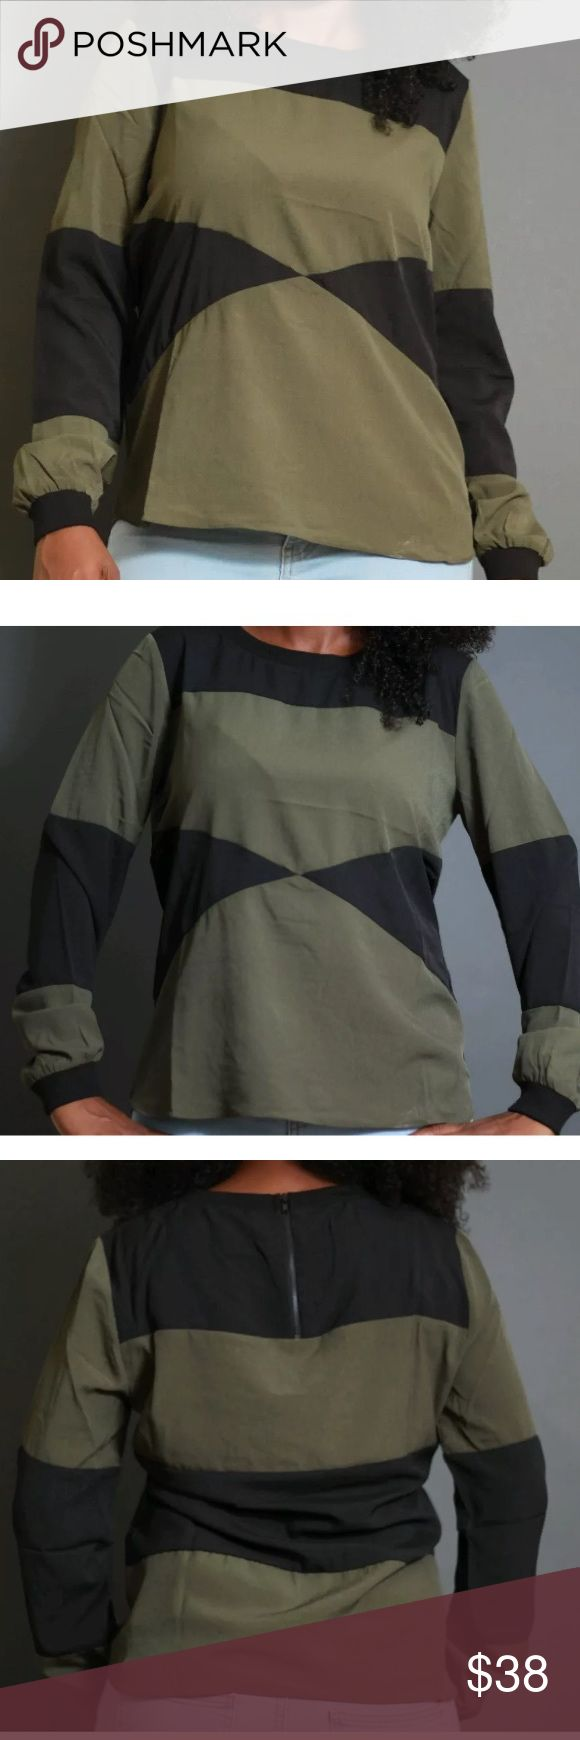 Walter Baker Fashion Long Sleeve Top This Walter Baker top has a very trendy and hip look. The large geometric print accentuates it's simple and sophisticated style. This is great all-season top. Tops Blouses